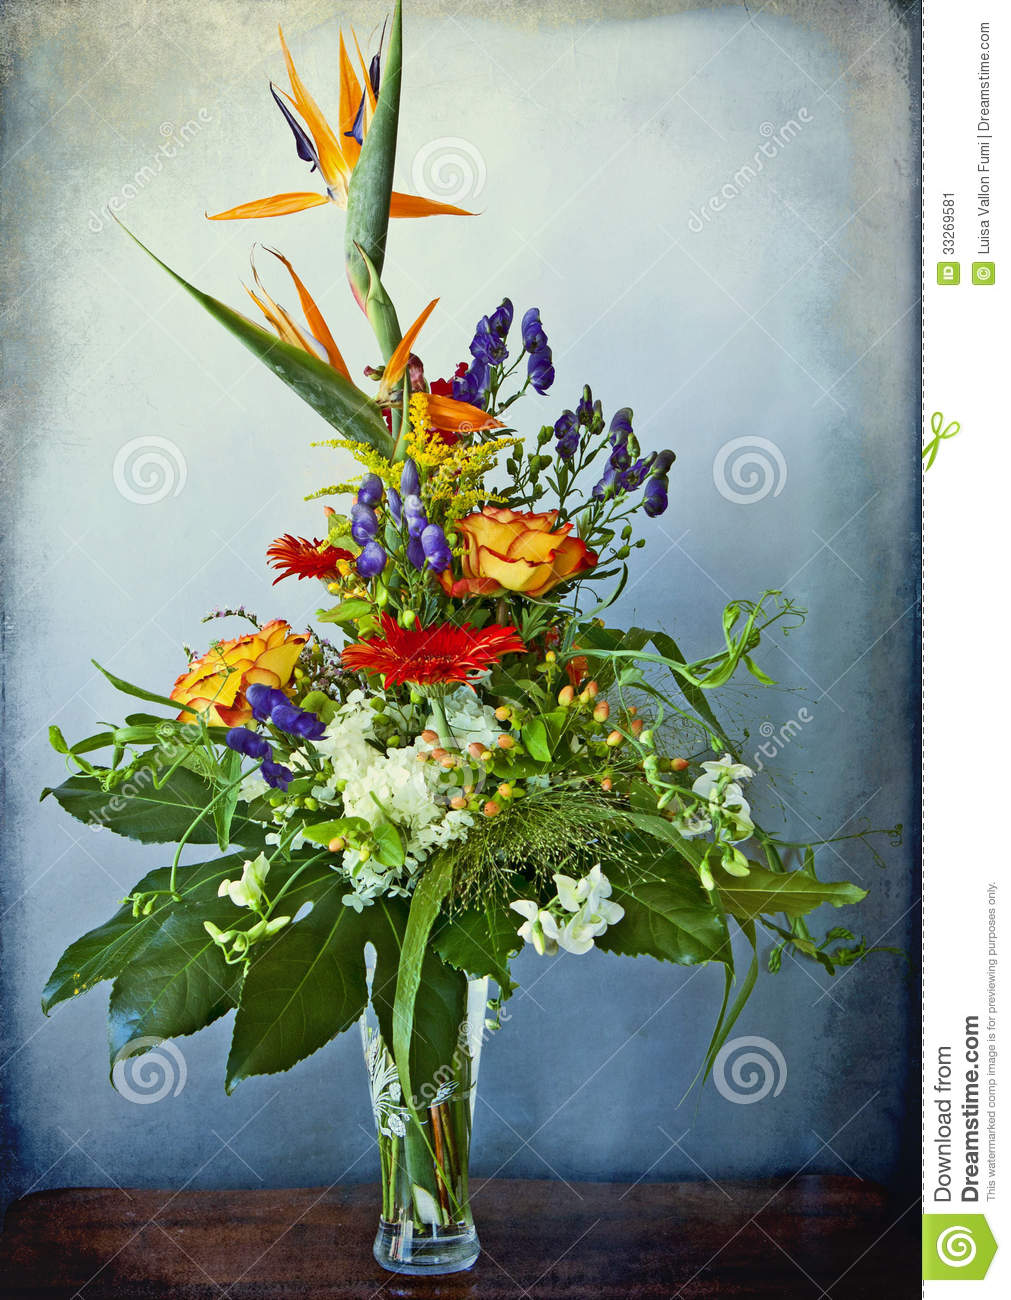 Beautiful Flowers Composition With Bird Of Paradise Flowers On A